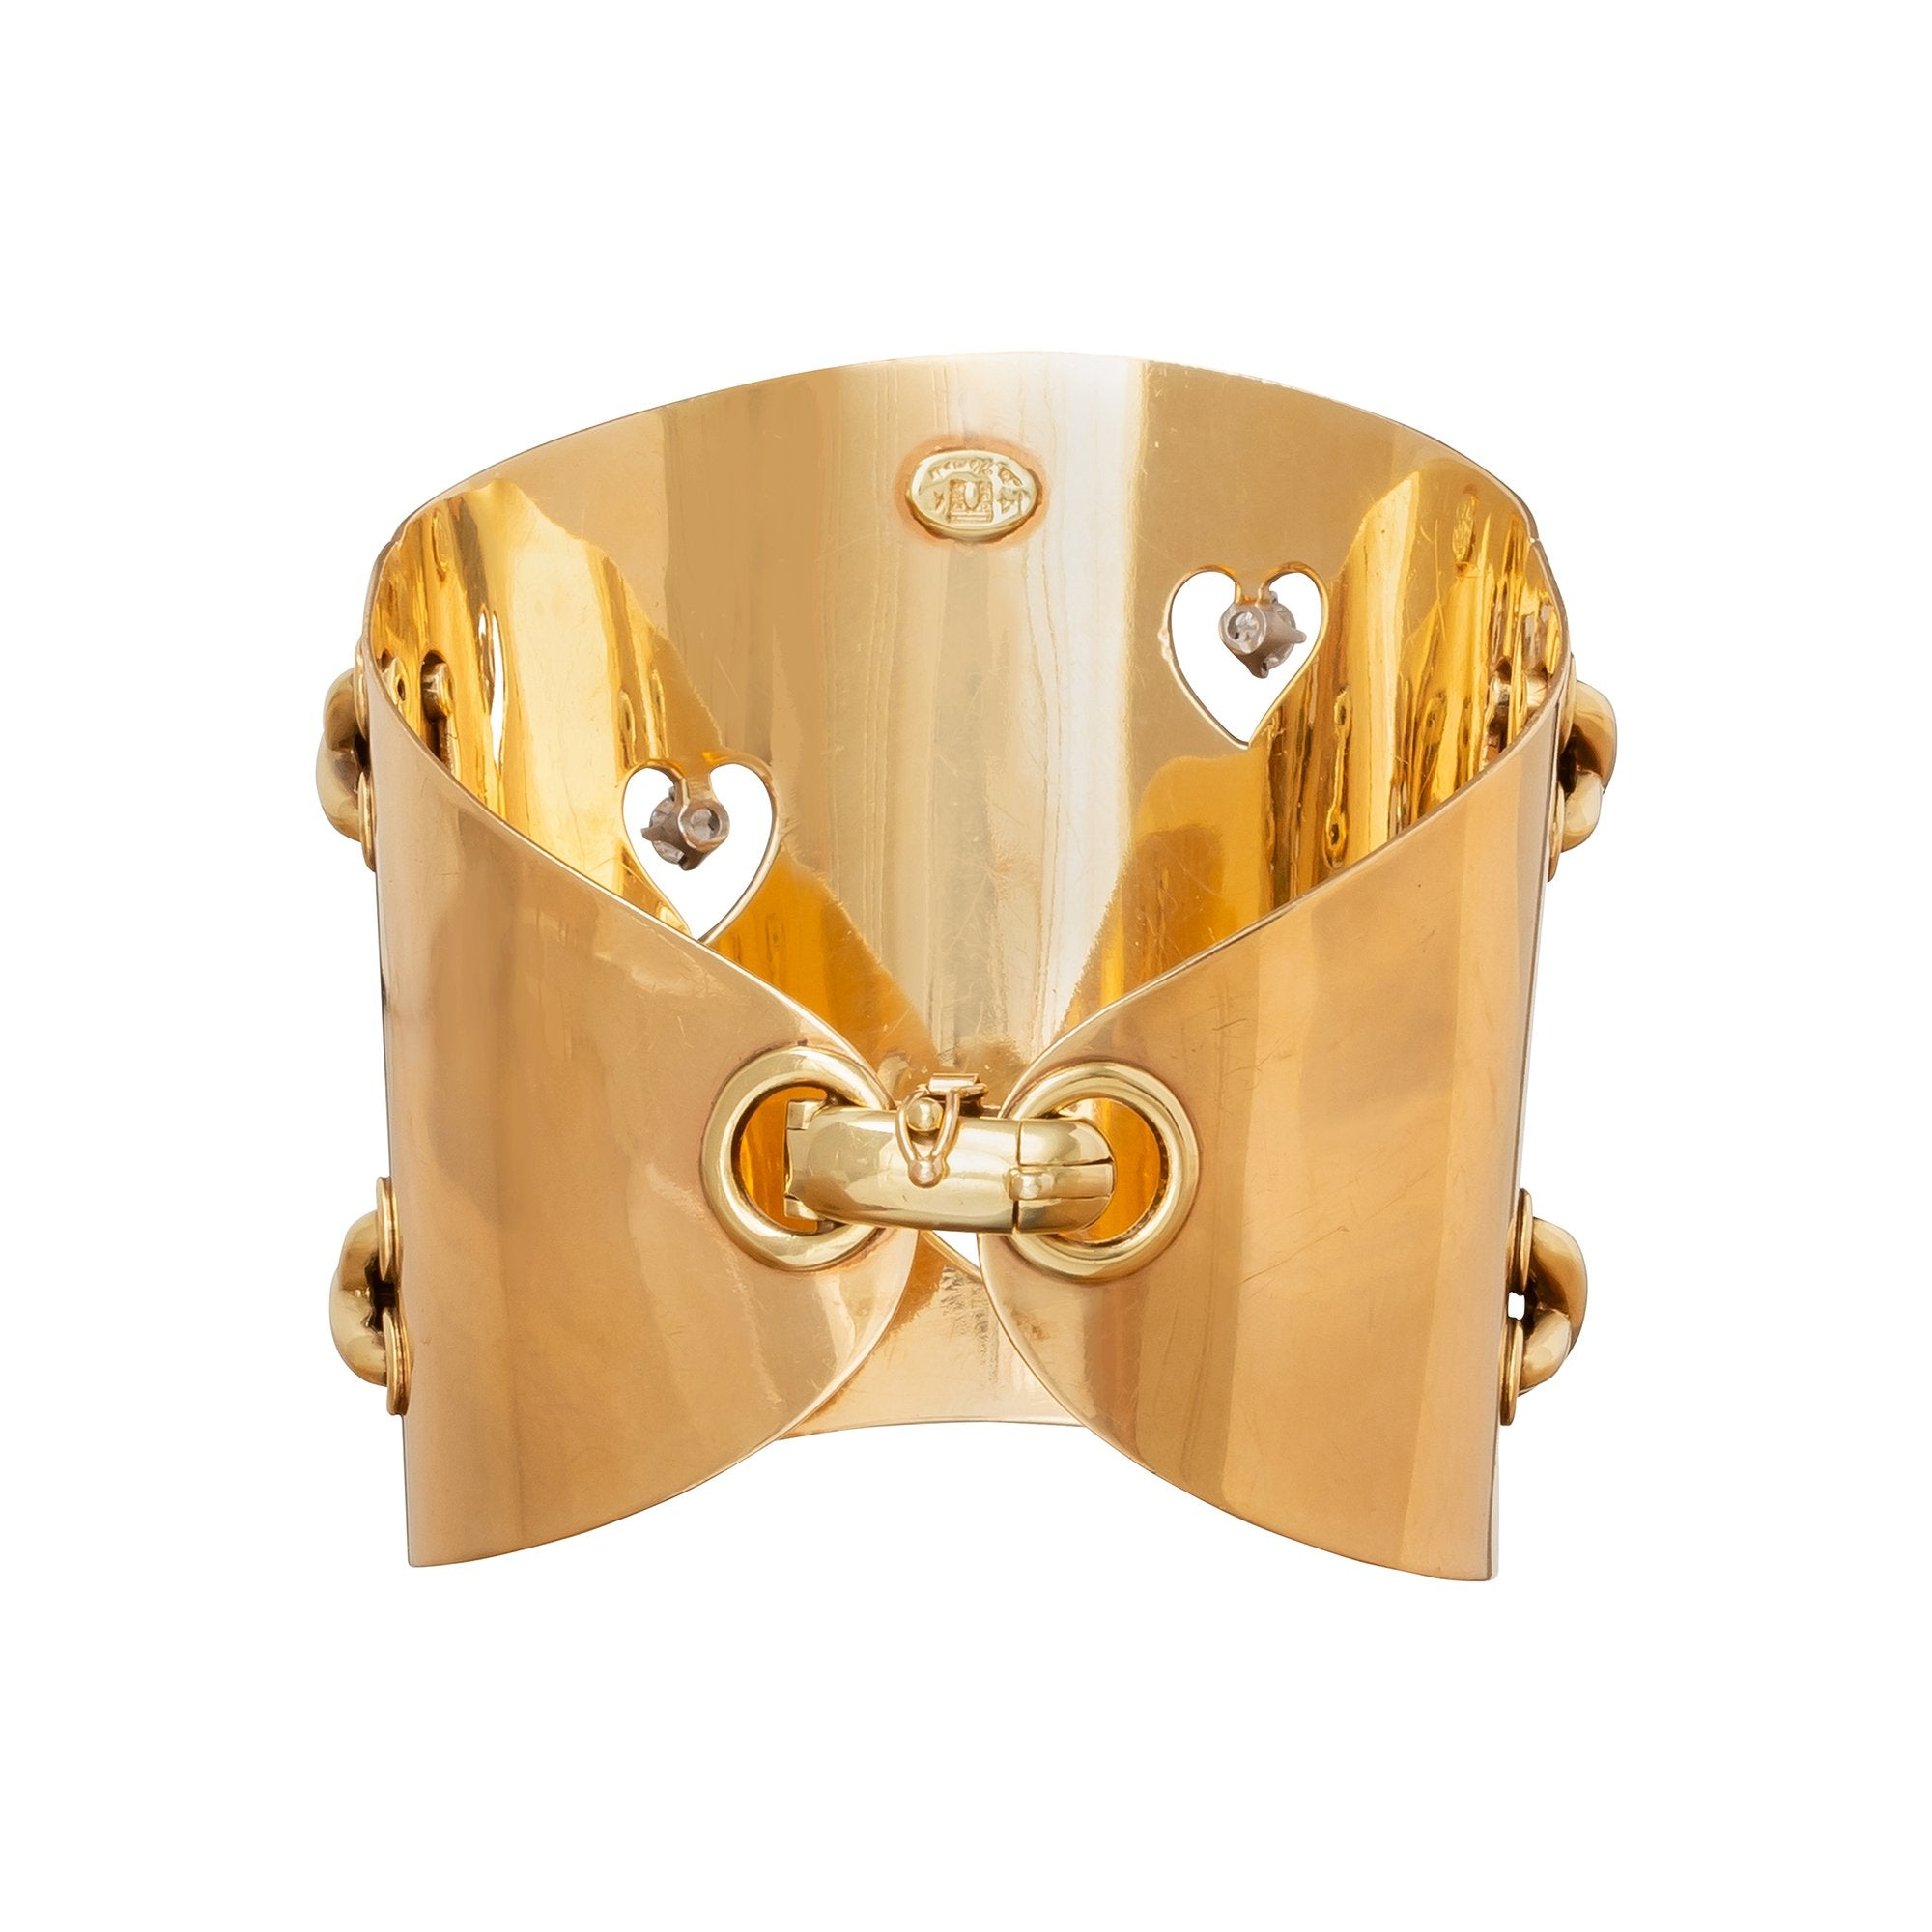 La Triomphe Heart & Stitches Cuff - Antique & Vintage Jewelry - Bracelets | Broken English Jewelry